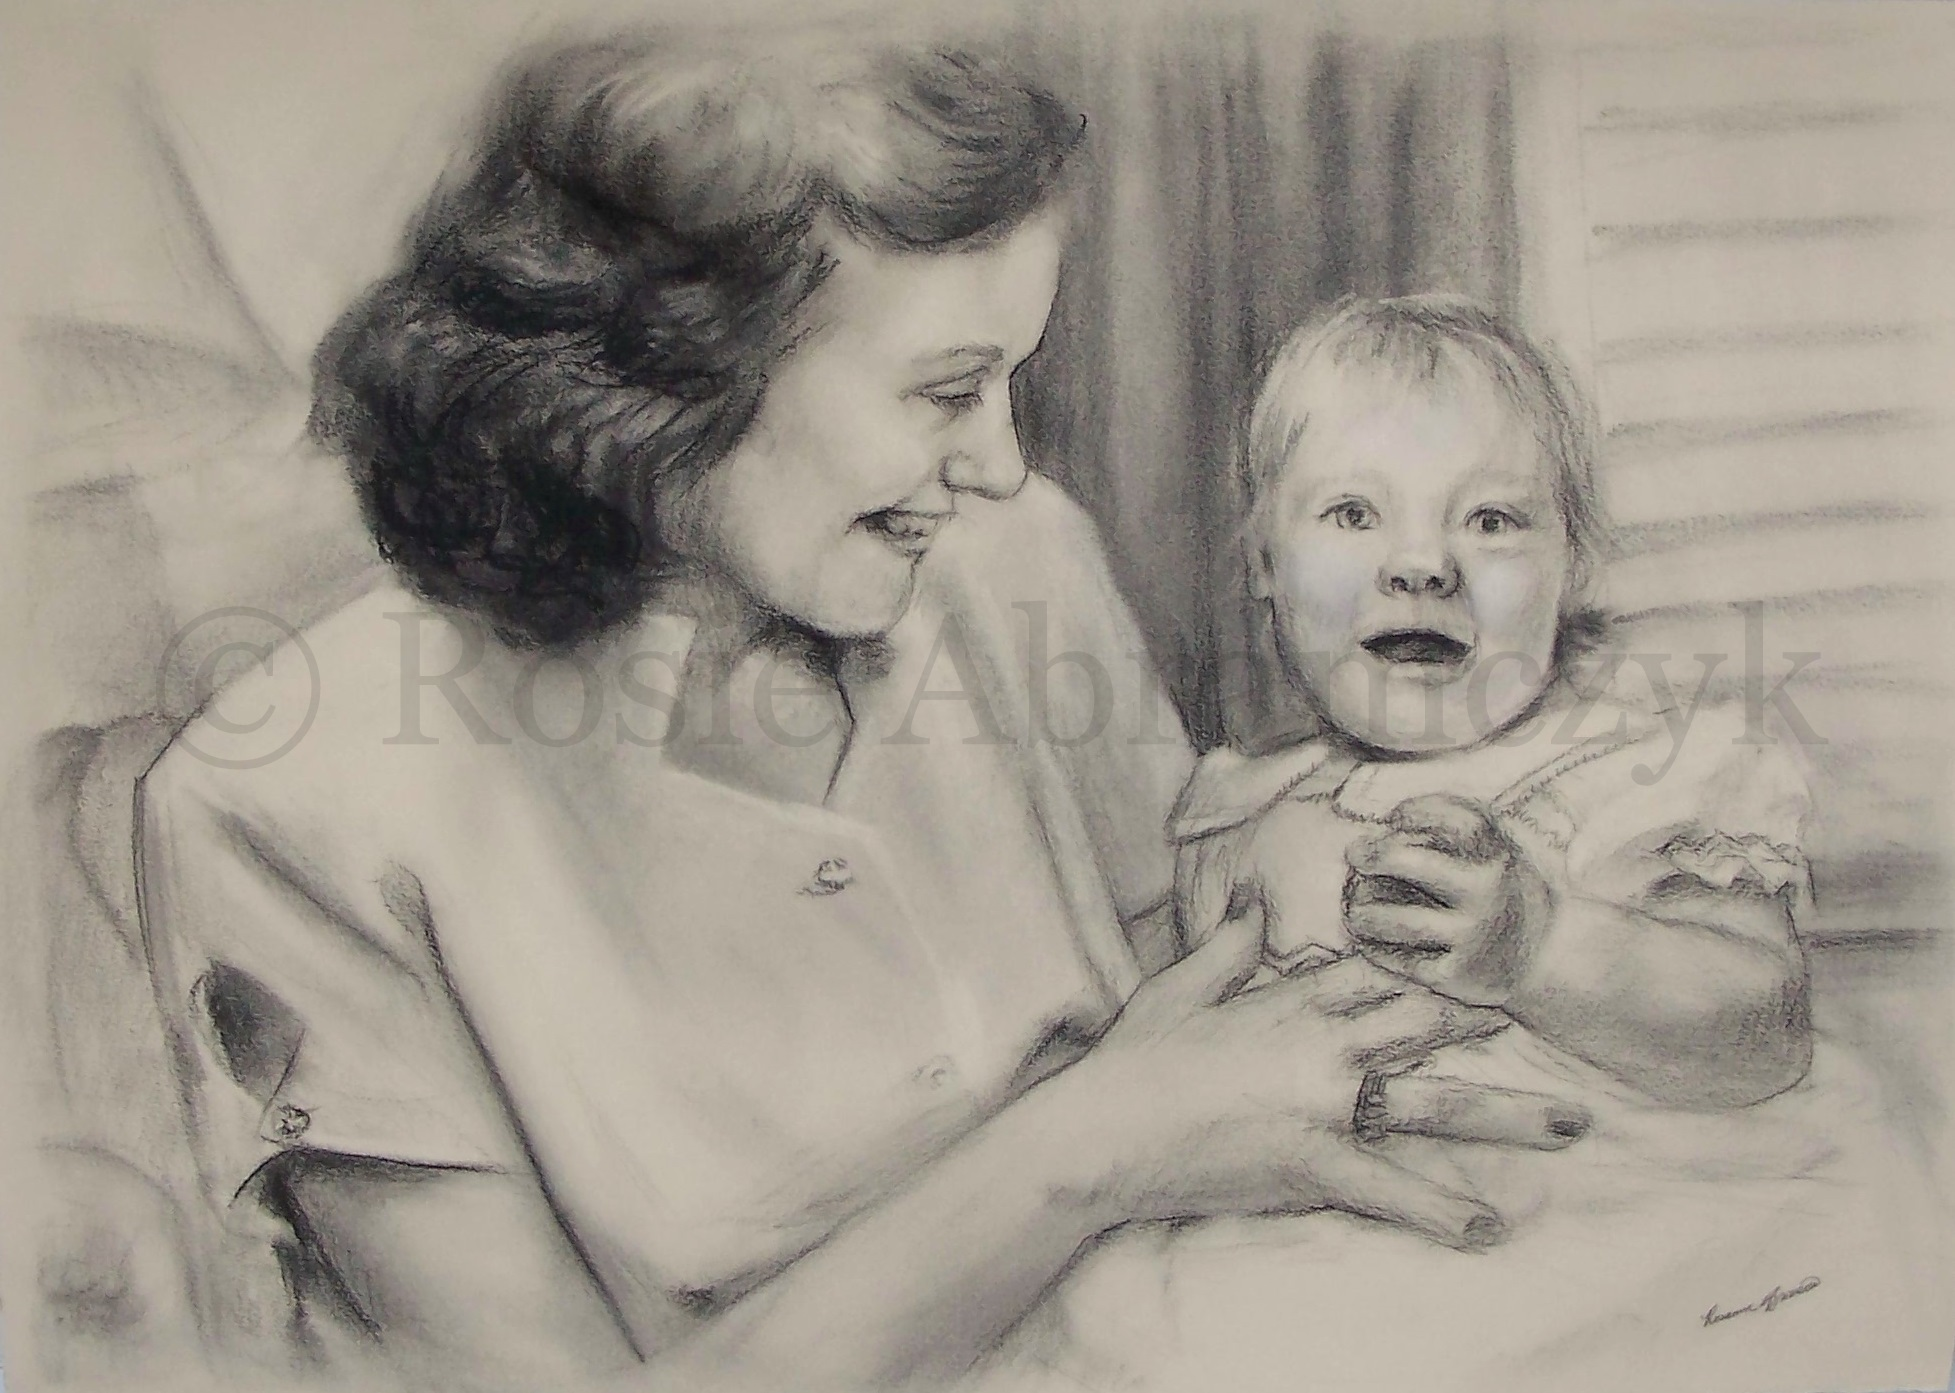 Mother and Child, by Rosie Bromeier-Abramczyk, 2008, Charcoal